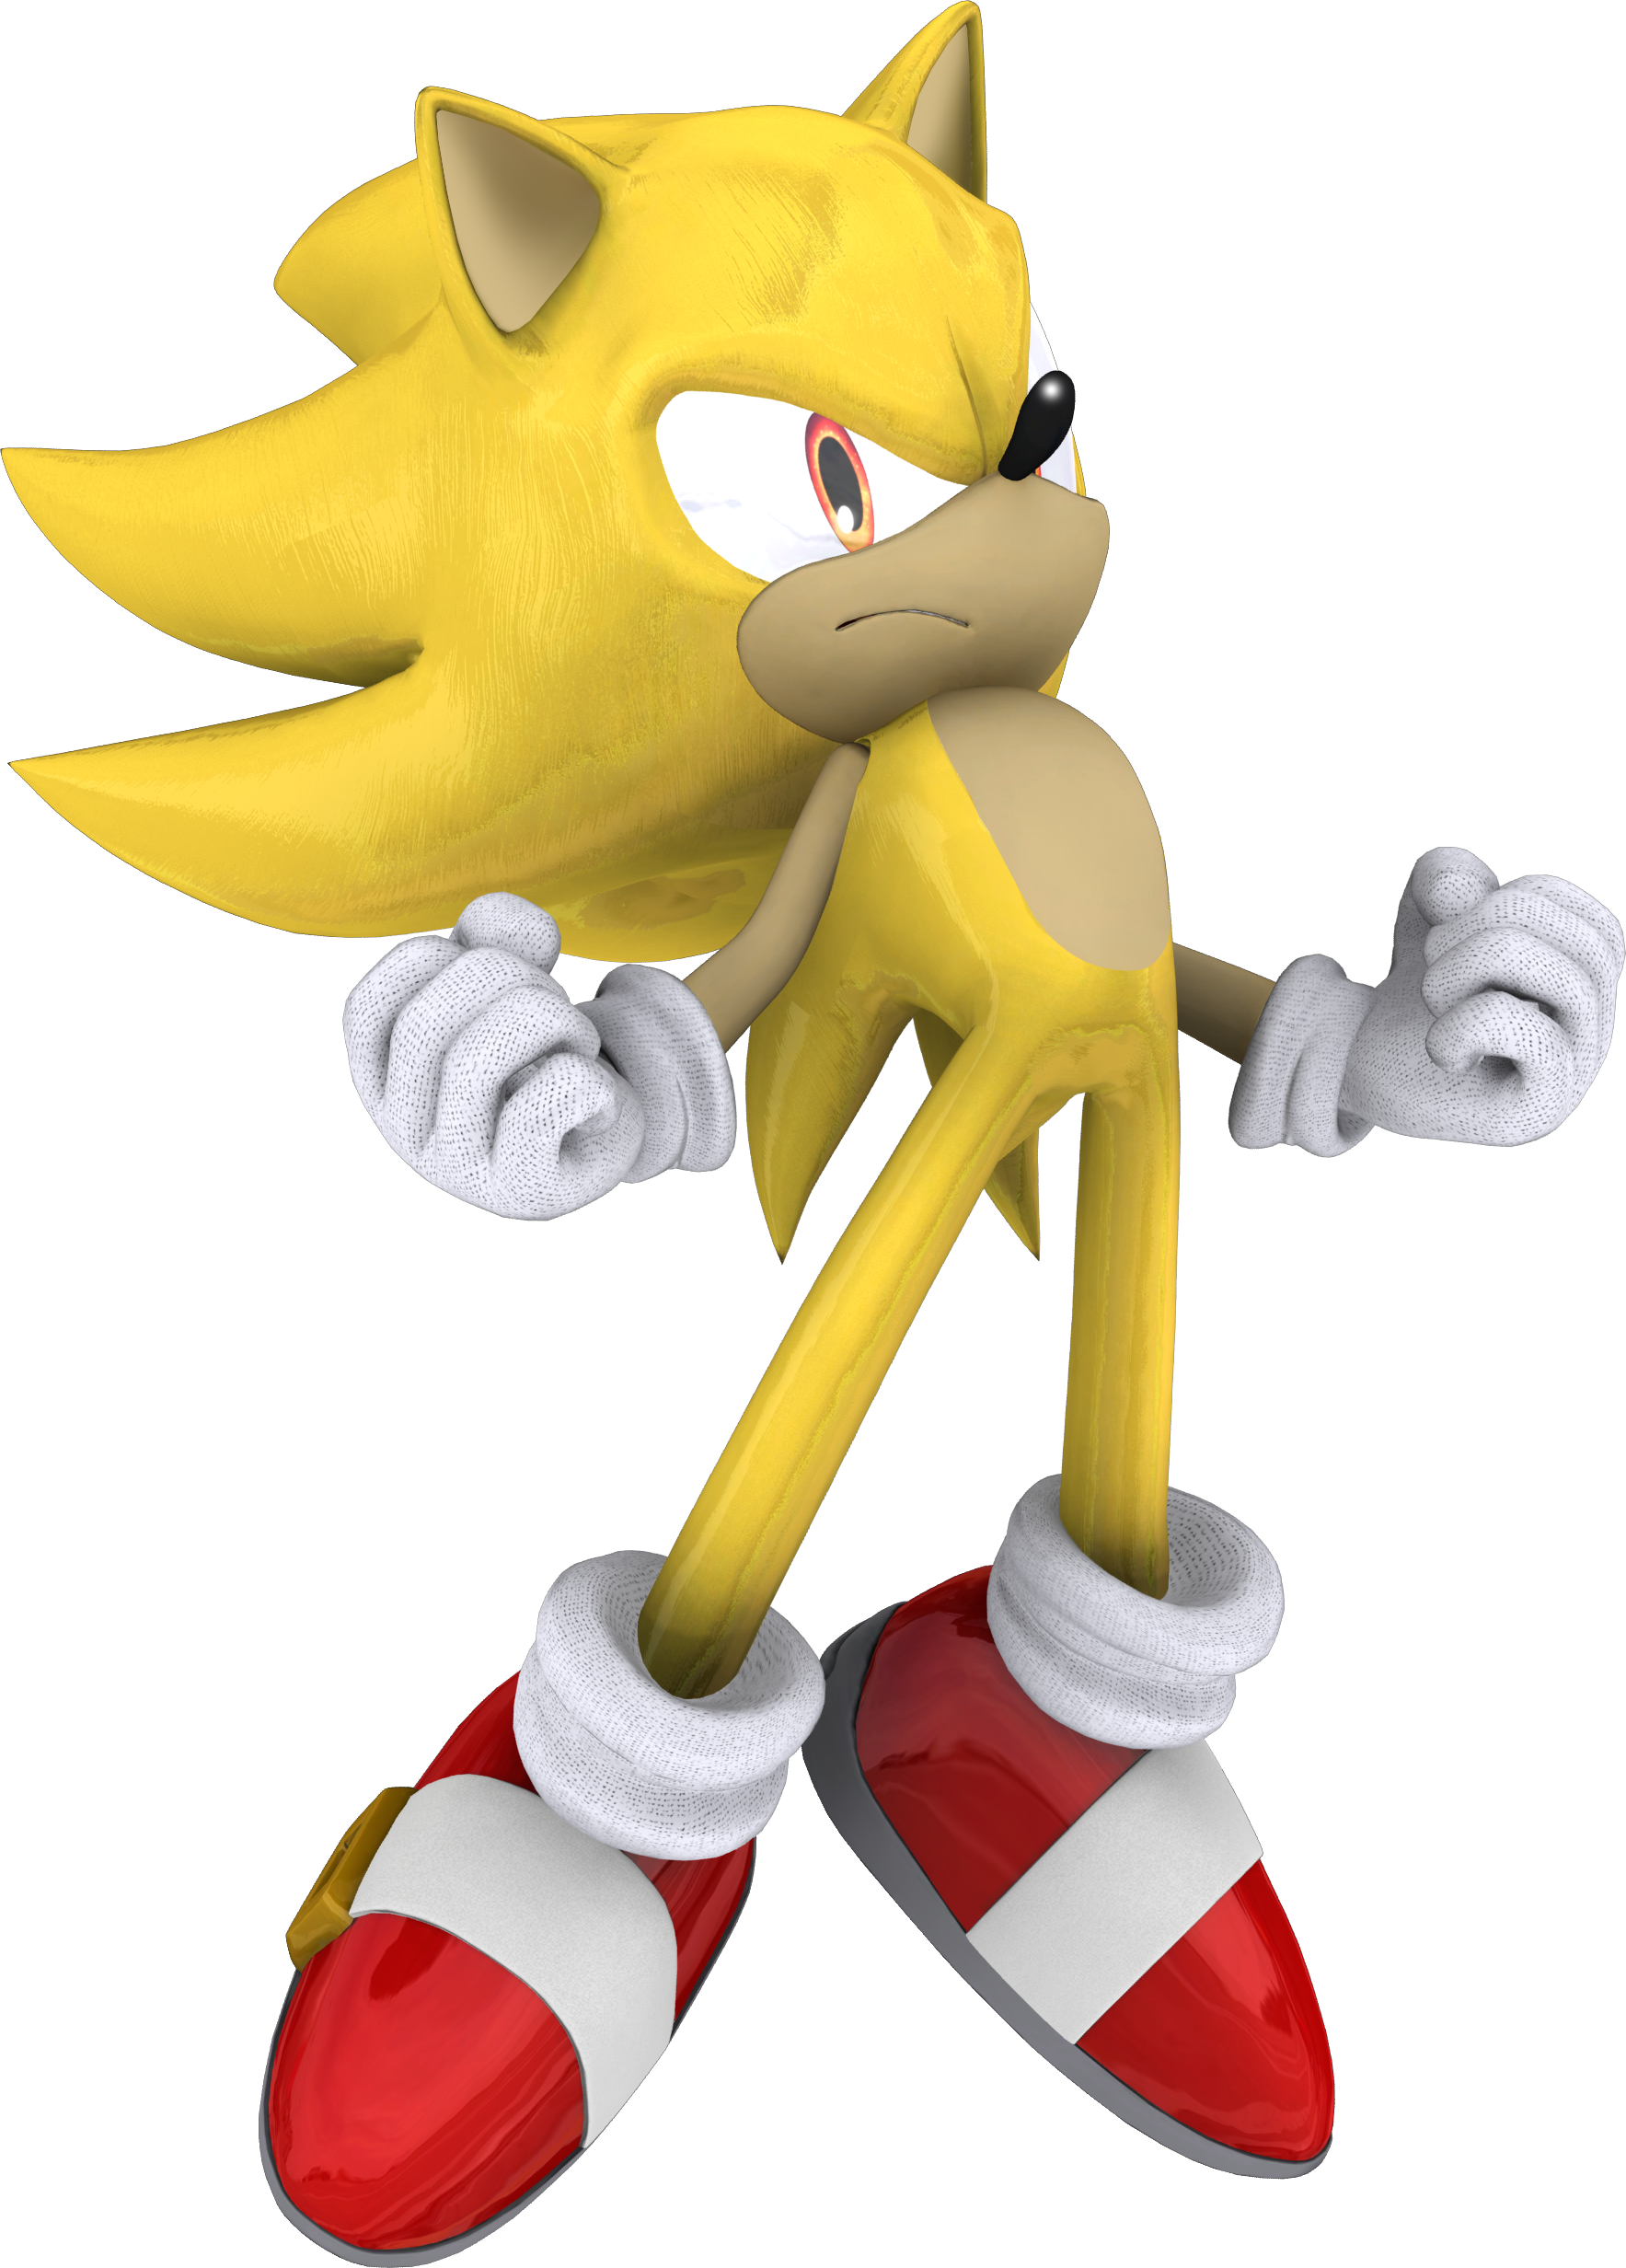 Super Sonic the Hedgehog by itsHelias94